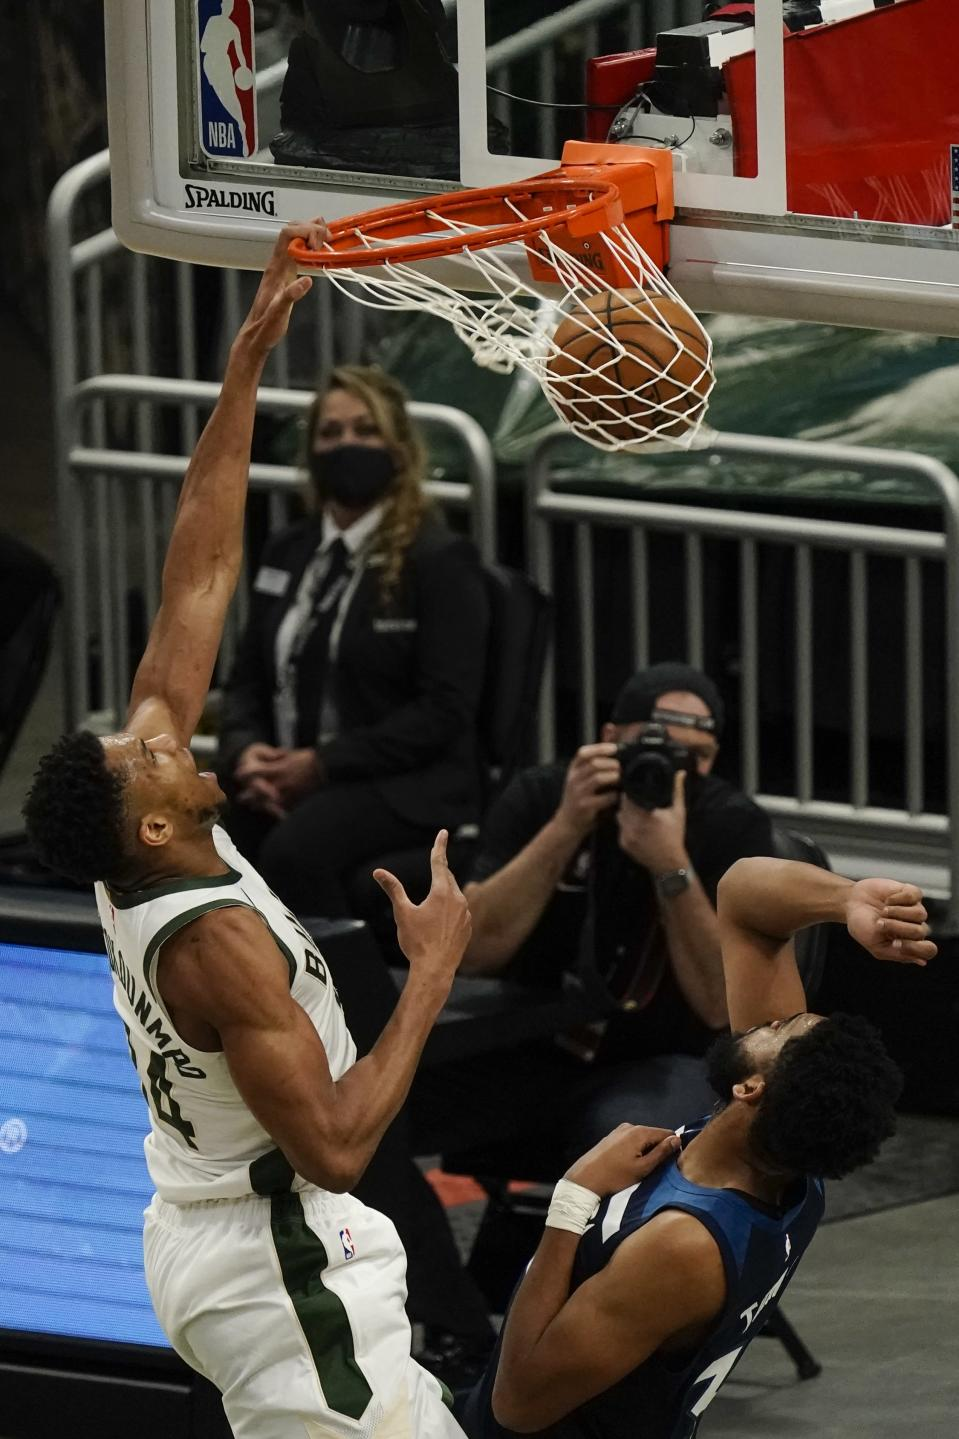 Milwaukee Bucks' Giannis Antetokounmpo dunks over Minnesota Timberwolves' Karl-Anthony Towns during the first half of an NBA basketball game Tuesday, Feb. 23, 2021, in Milwaukee. (AP Photo/Morry Gash)